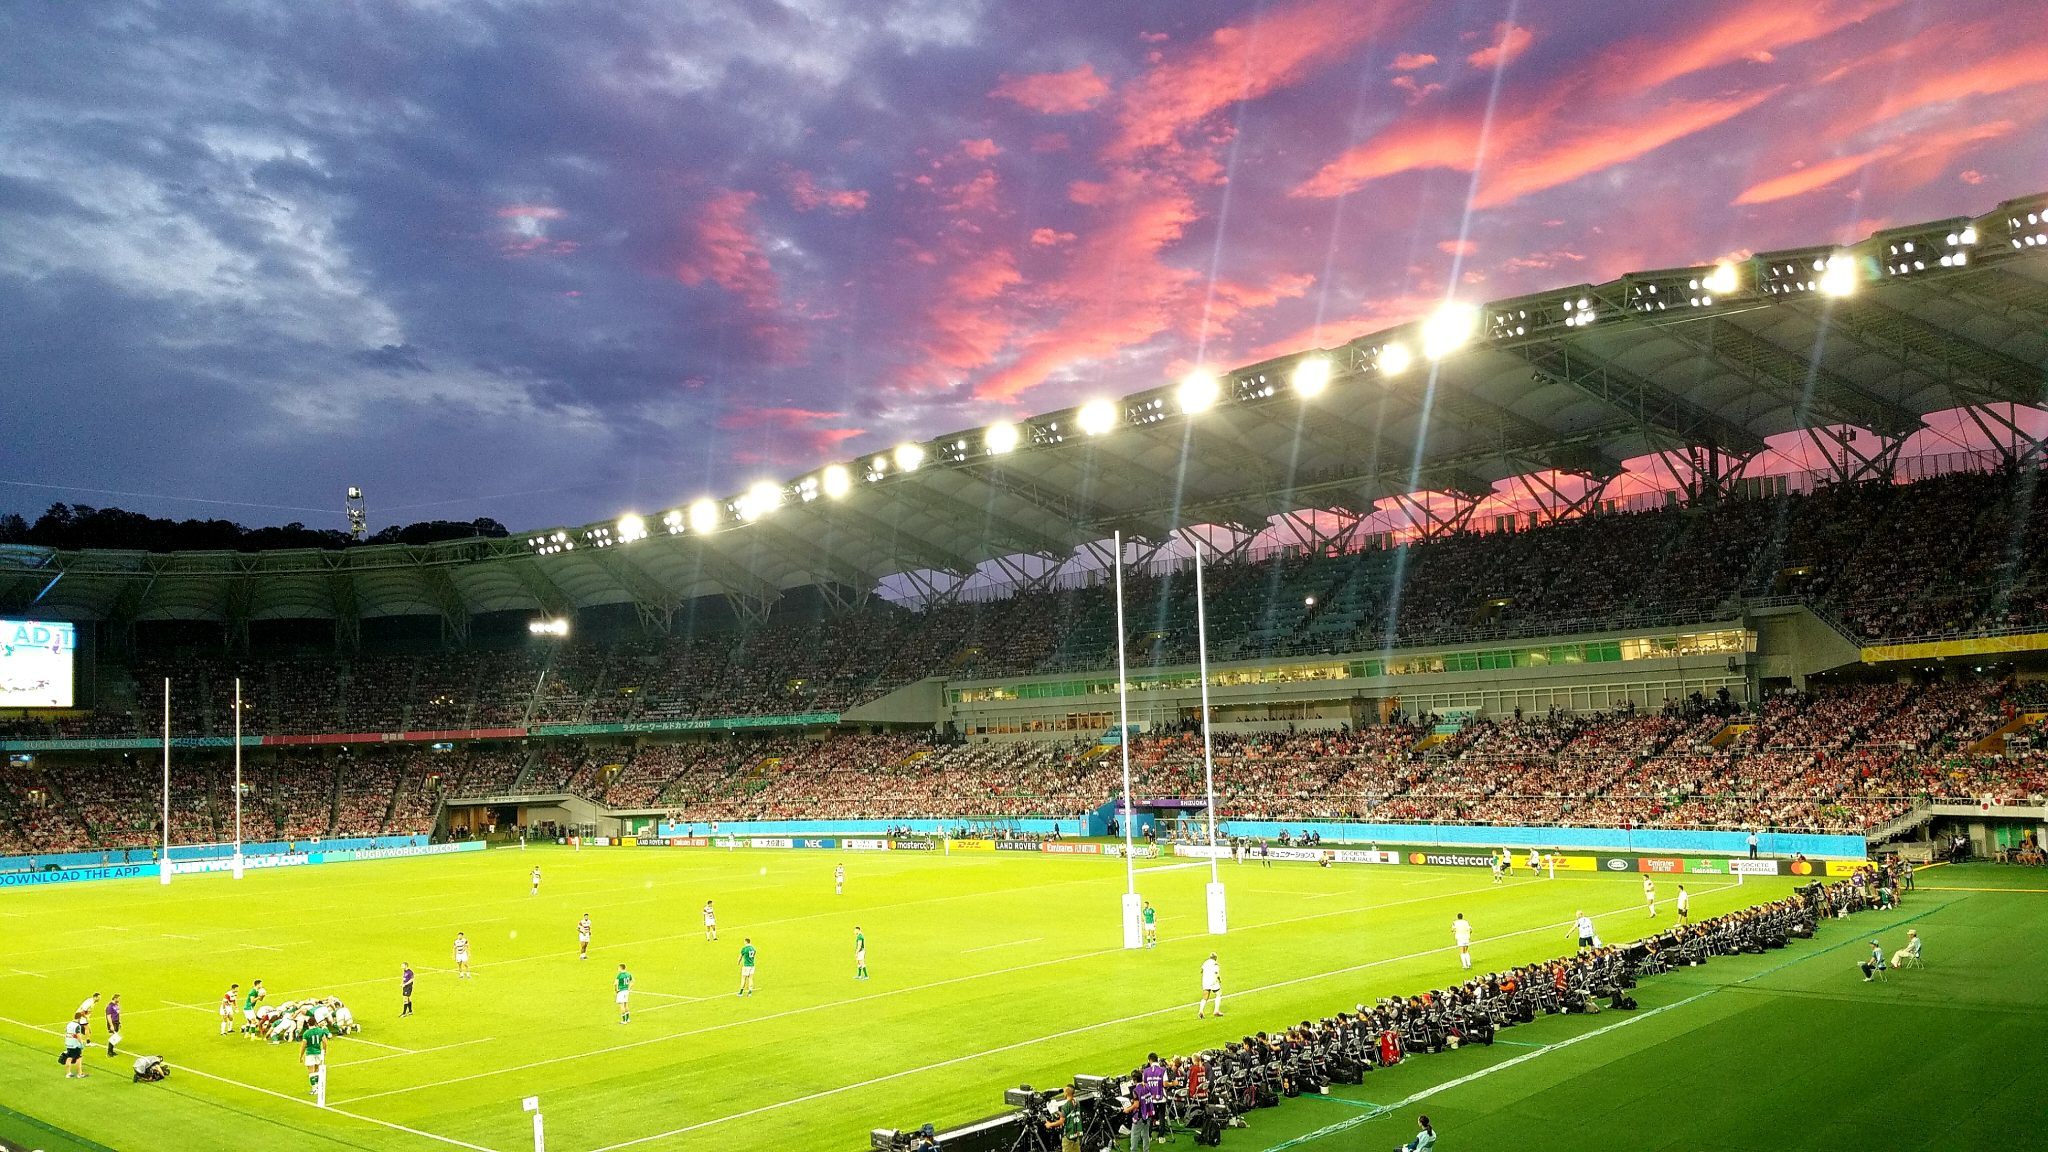 Shizuoka Stadium Ecopa on 28 September 2019 during the match when Japan beat Ireland 19-12